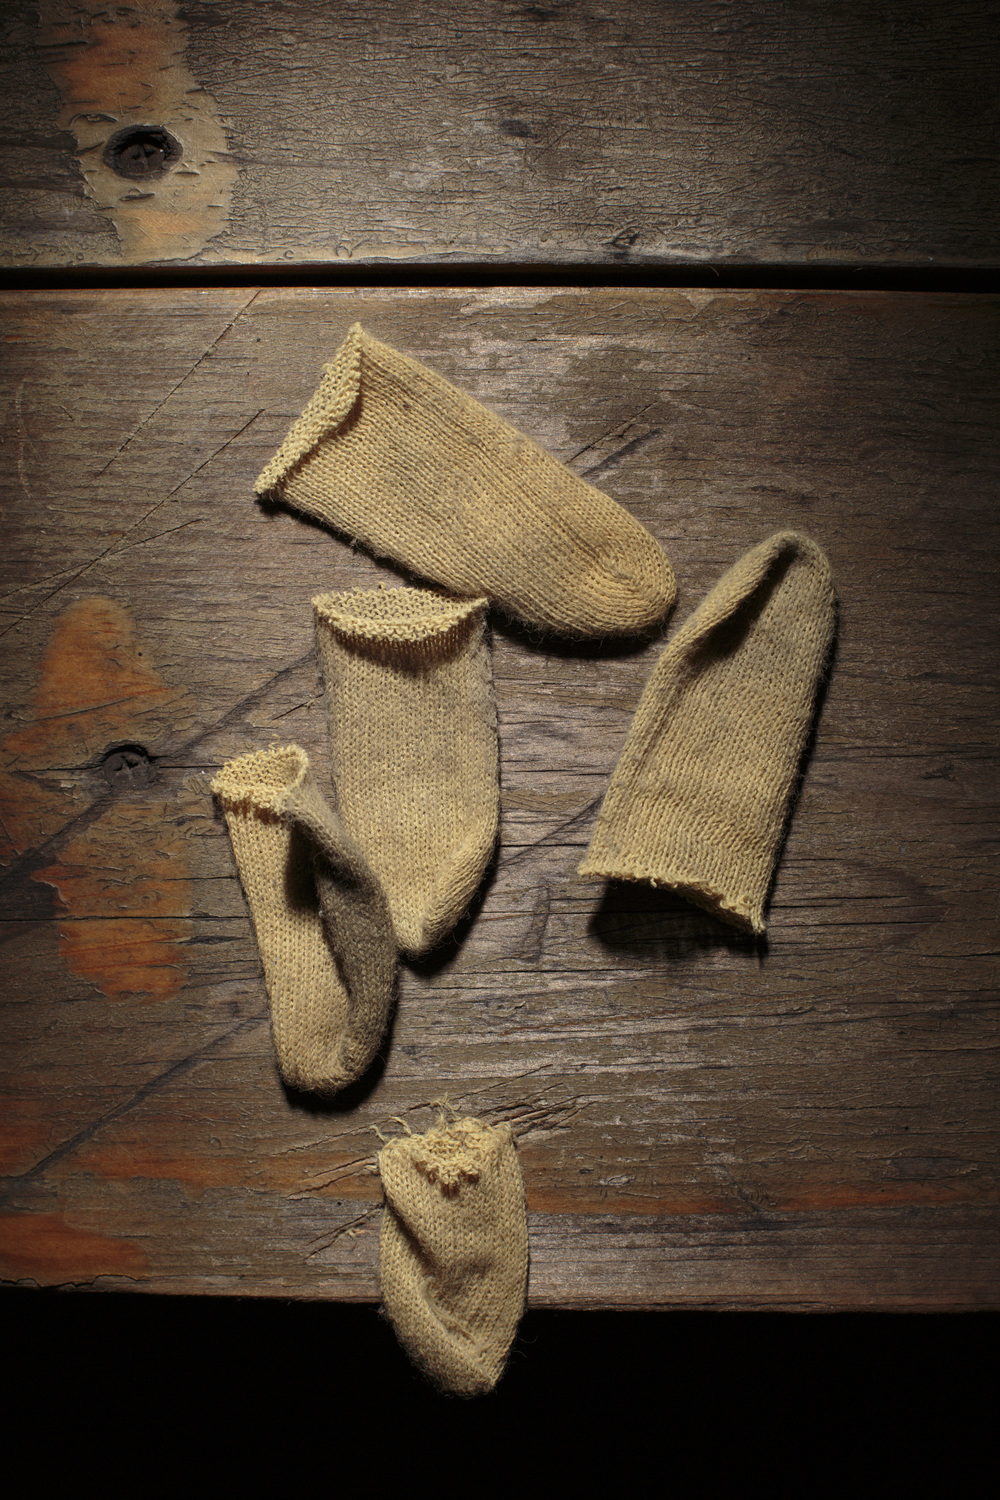 New York, USA - November 06, 2015: Cut off fingertips of cotton gloves lie on a wooden table on Chrystie St. The Bowery, a street and neighborhood in Manhattan, once home for vagrants and a diversity of subcultures became the playground of artists, fancy bars and real-estate tycoons. 